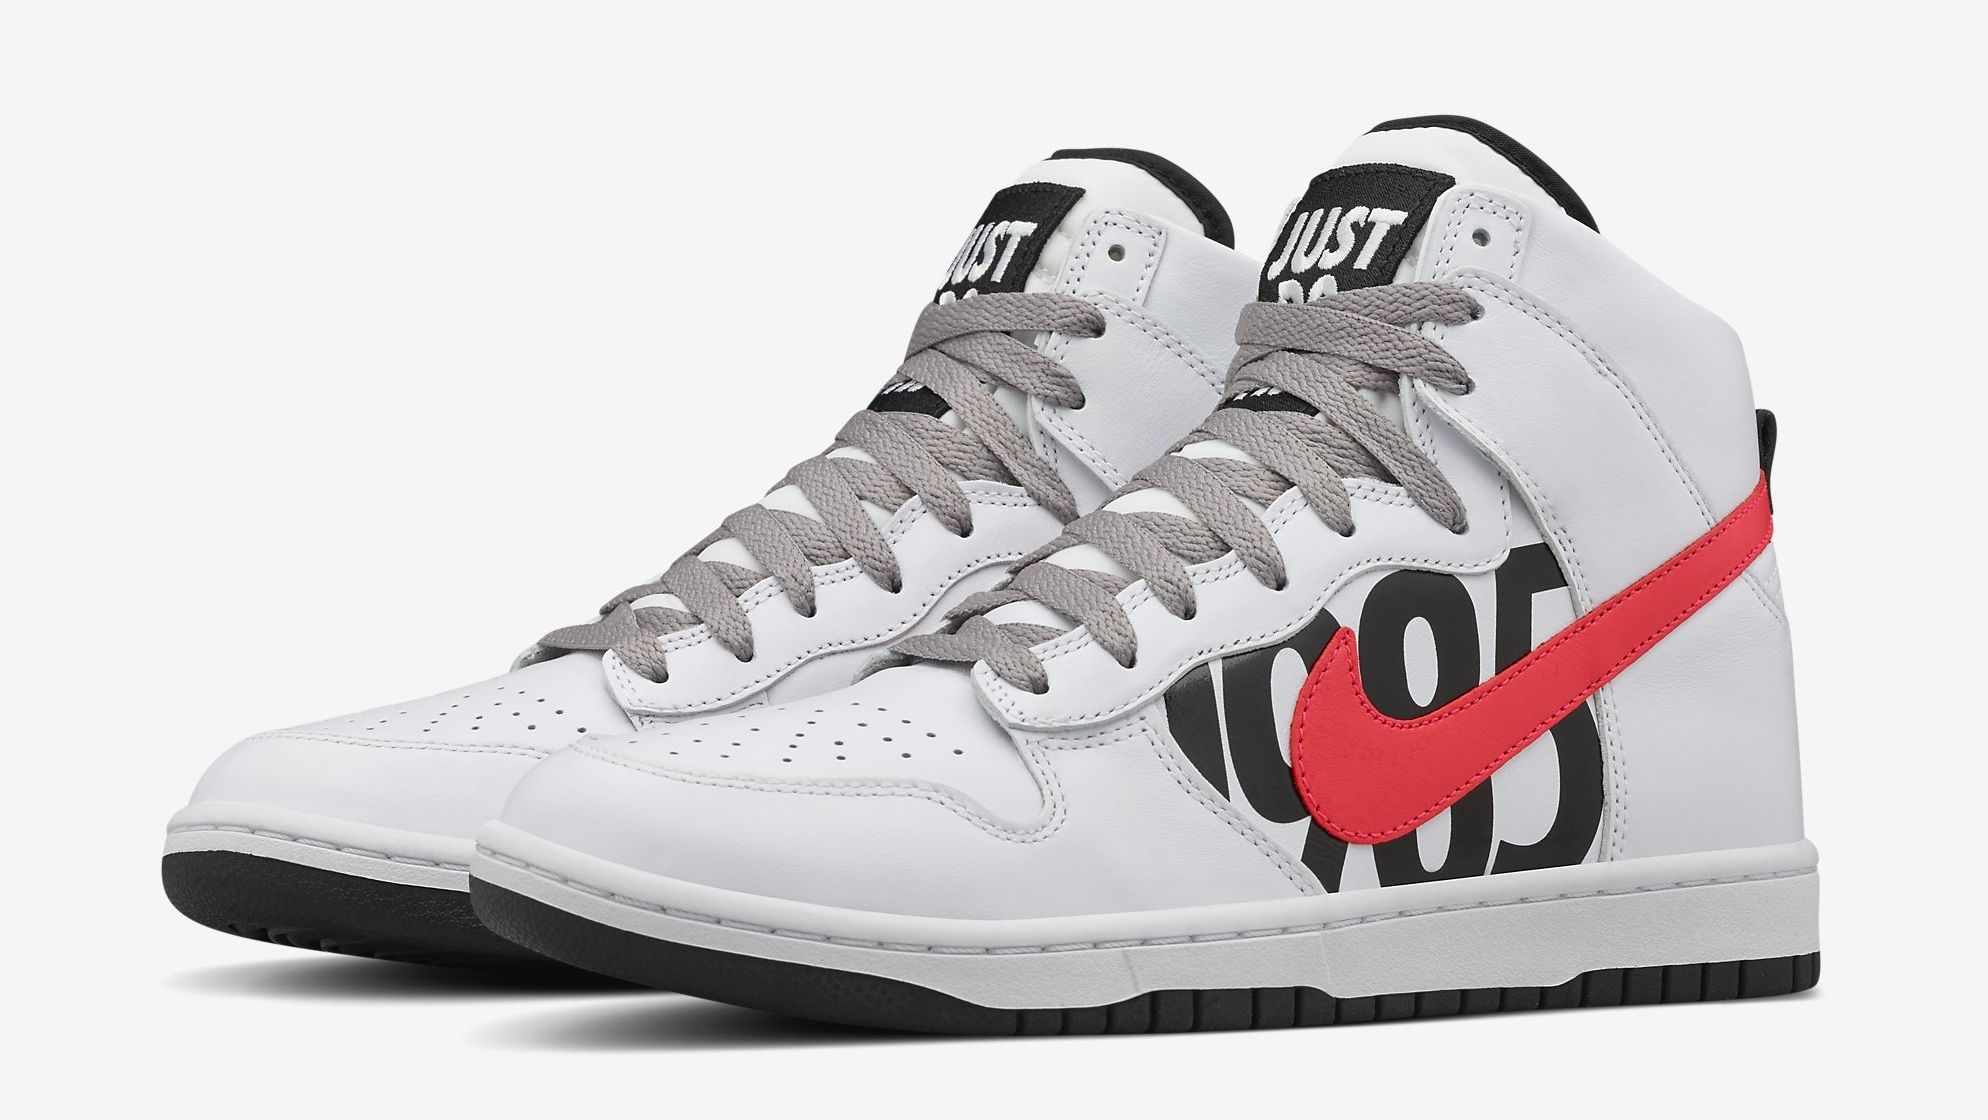 UNDFTD's Nike Dunk Is Finally Releasing